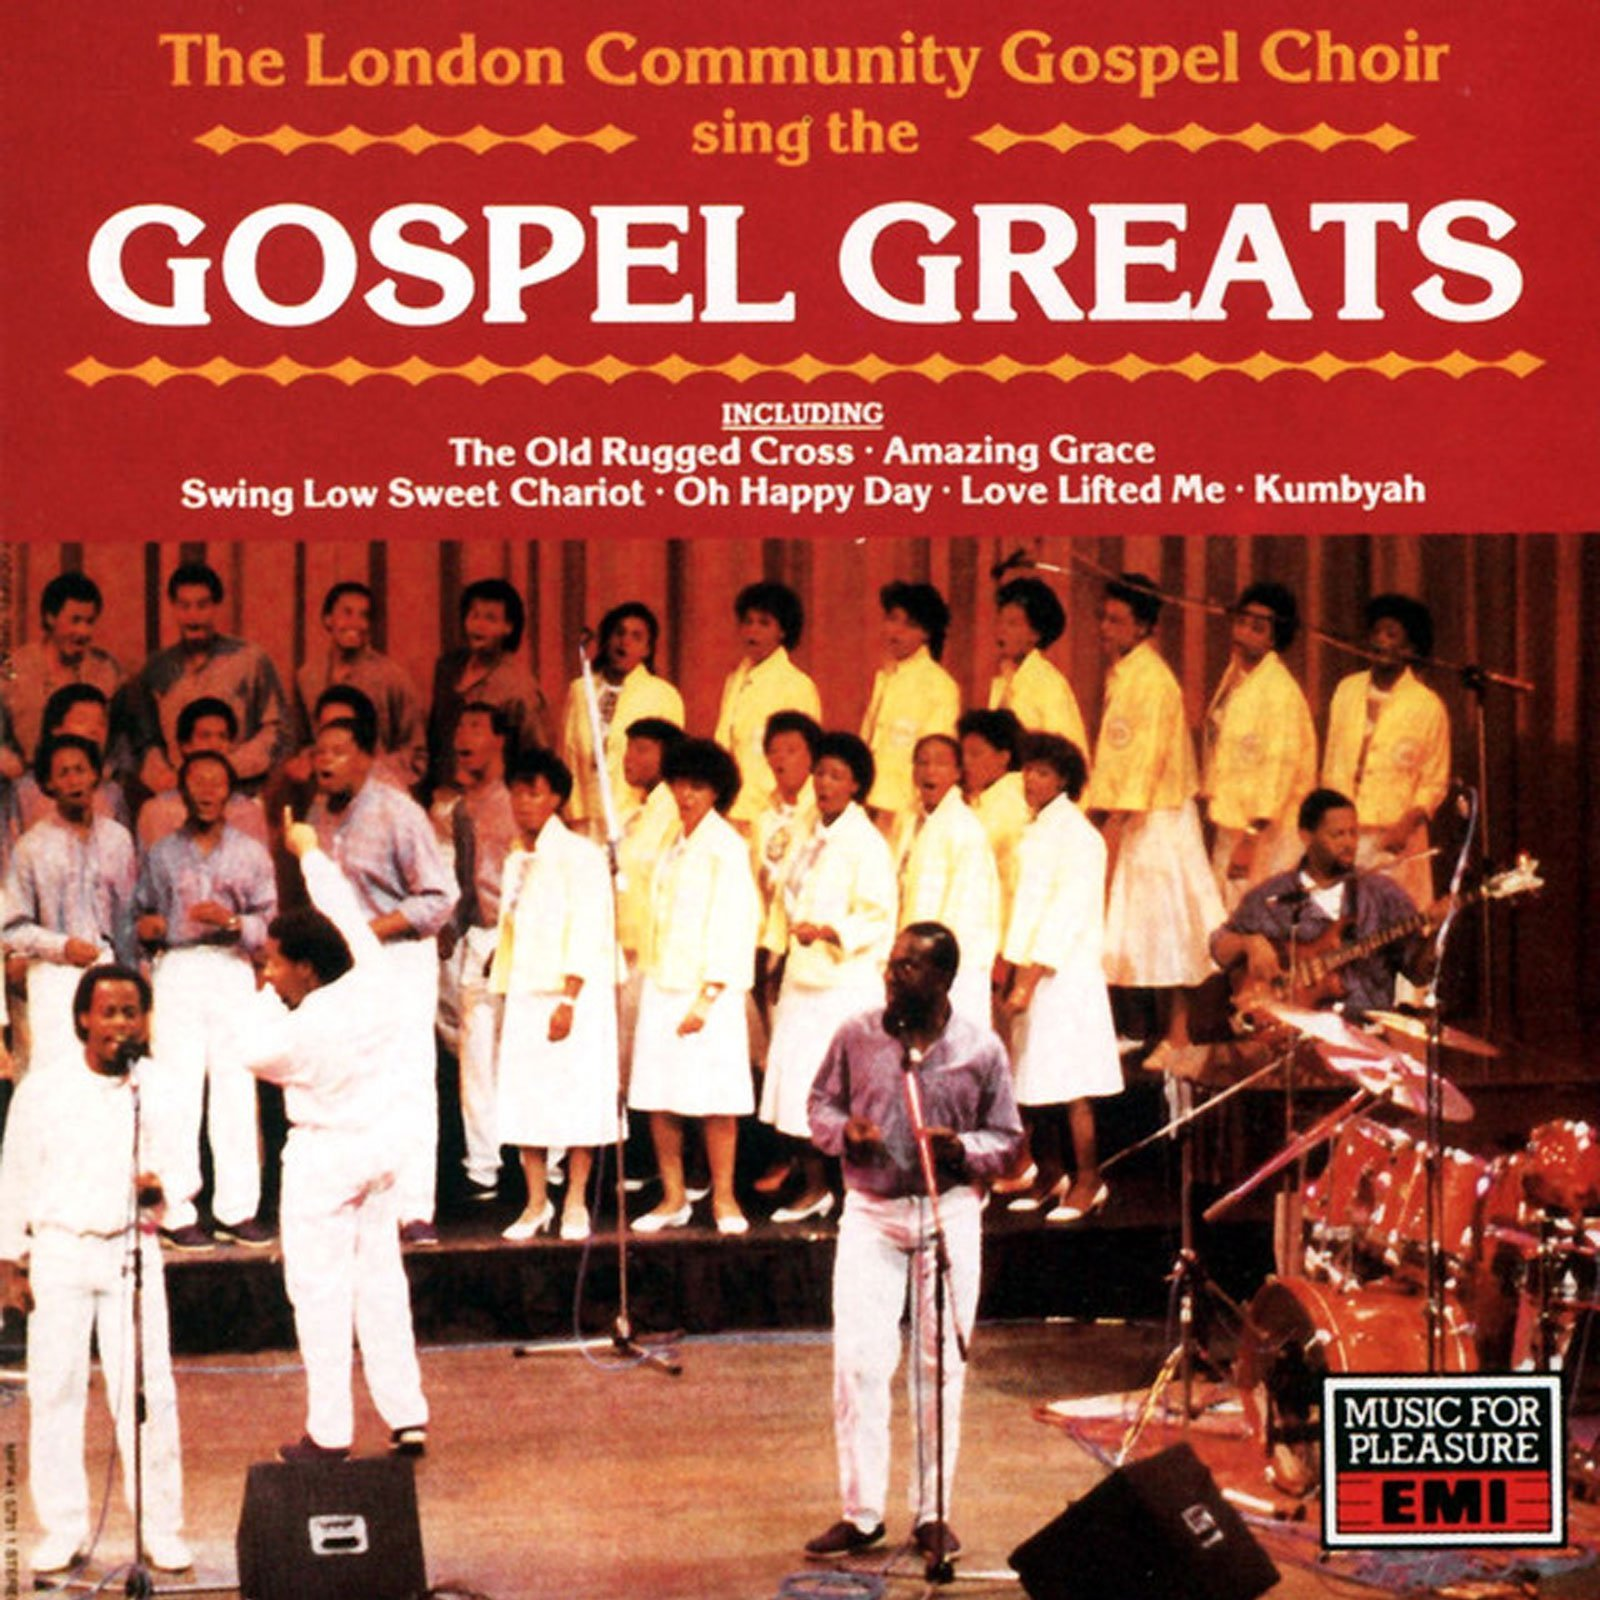 LCGC_Gospel_Greats_Cover_1600x1600